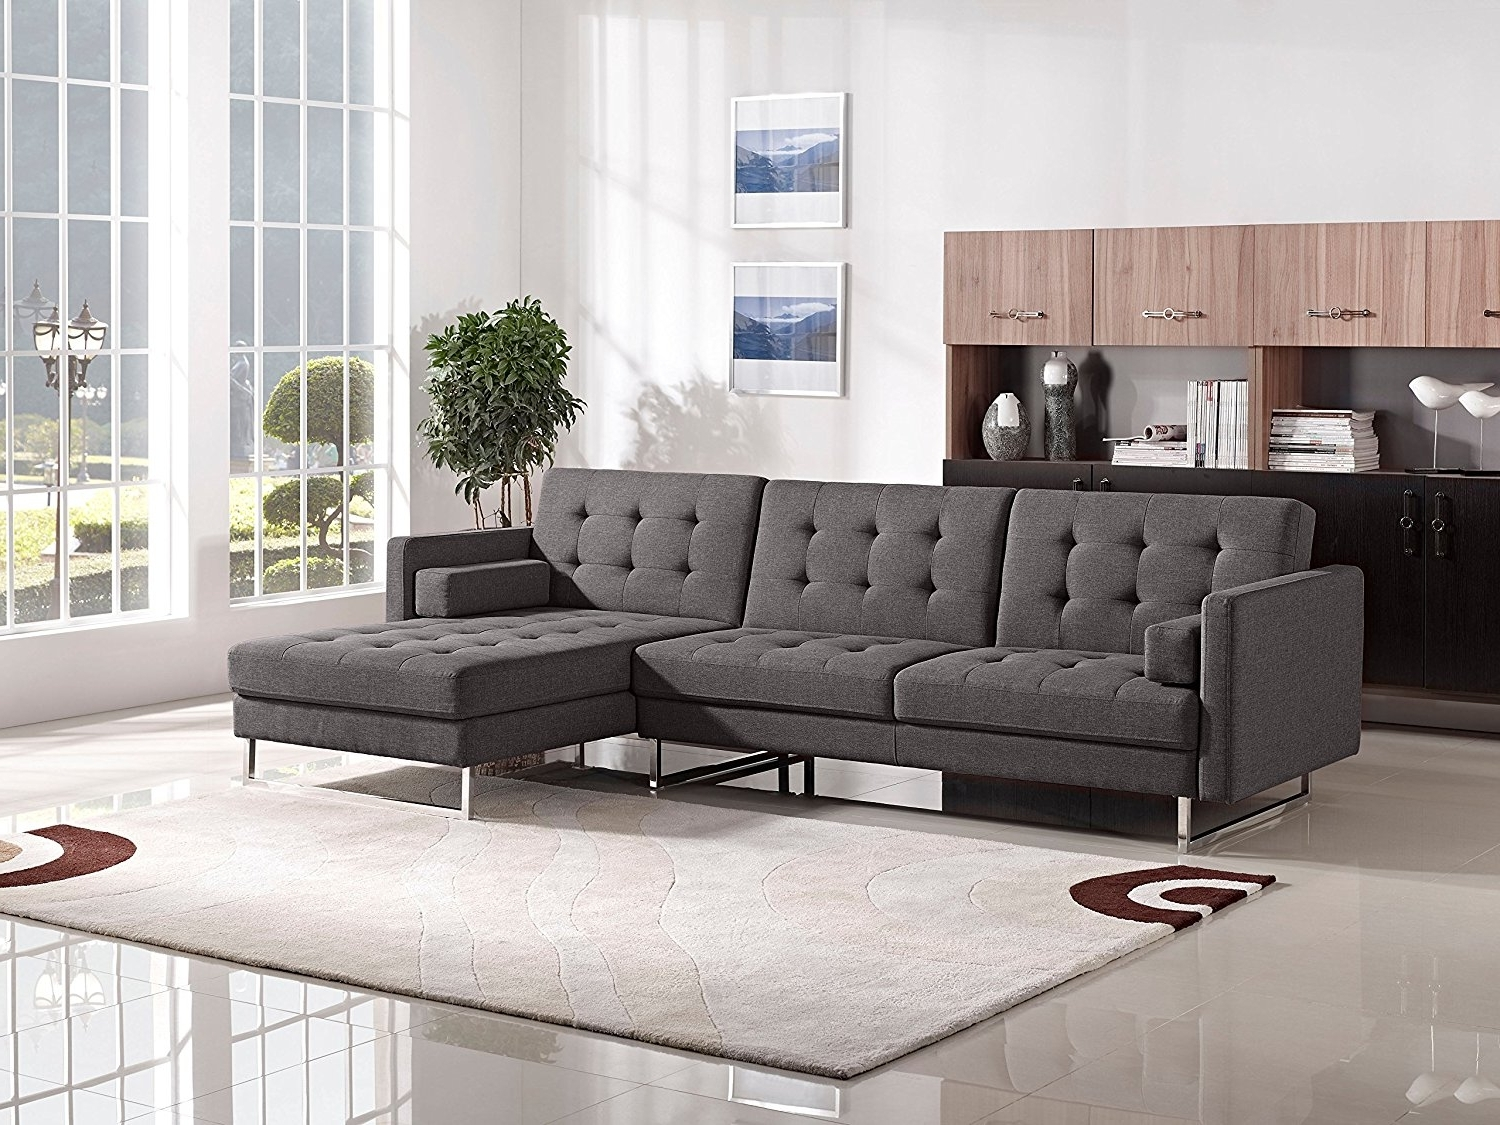 Well Known Tufted Sectionals Sofa With Chaise Inside Amazon: Opus Convertible Tufted Rf Chaise Sectionaldiamond (View 5 of 15)